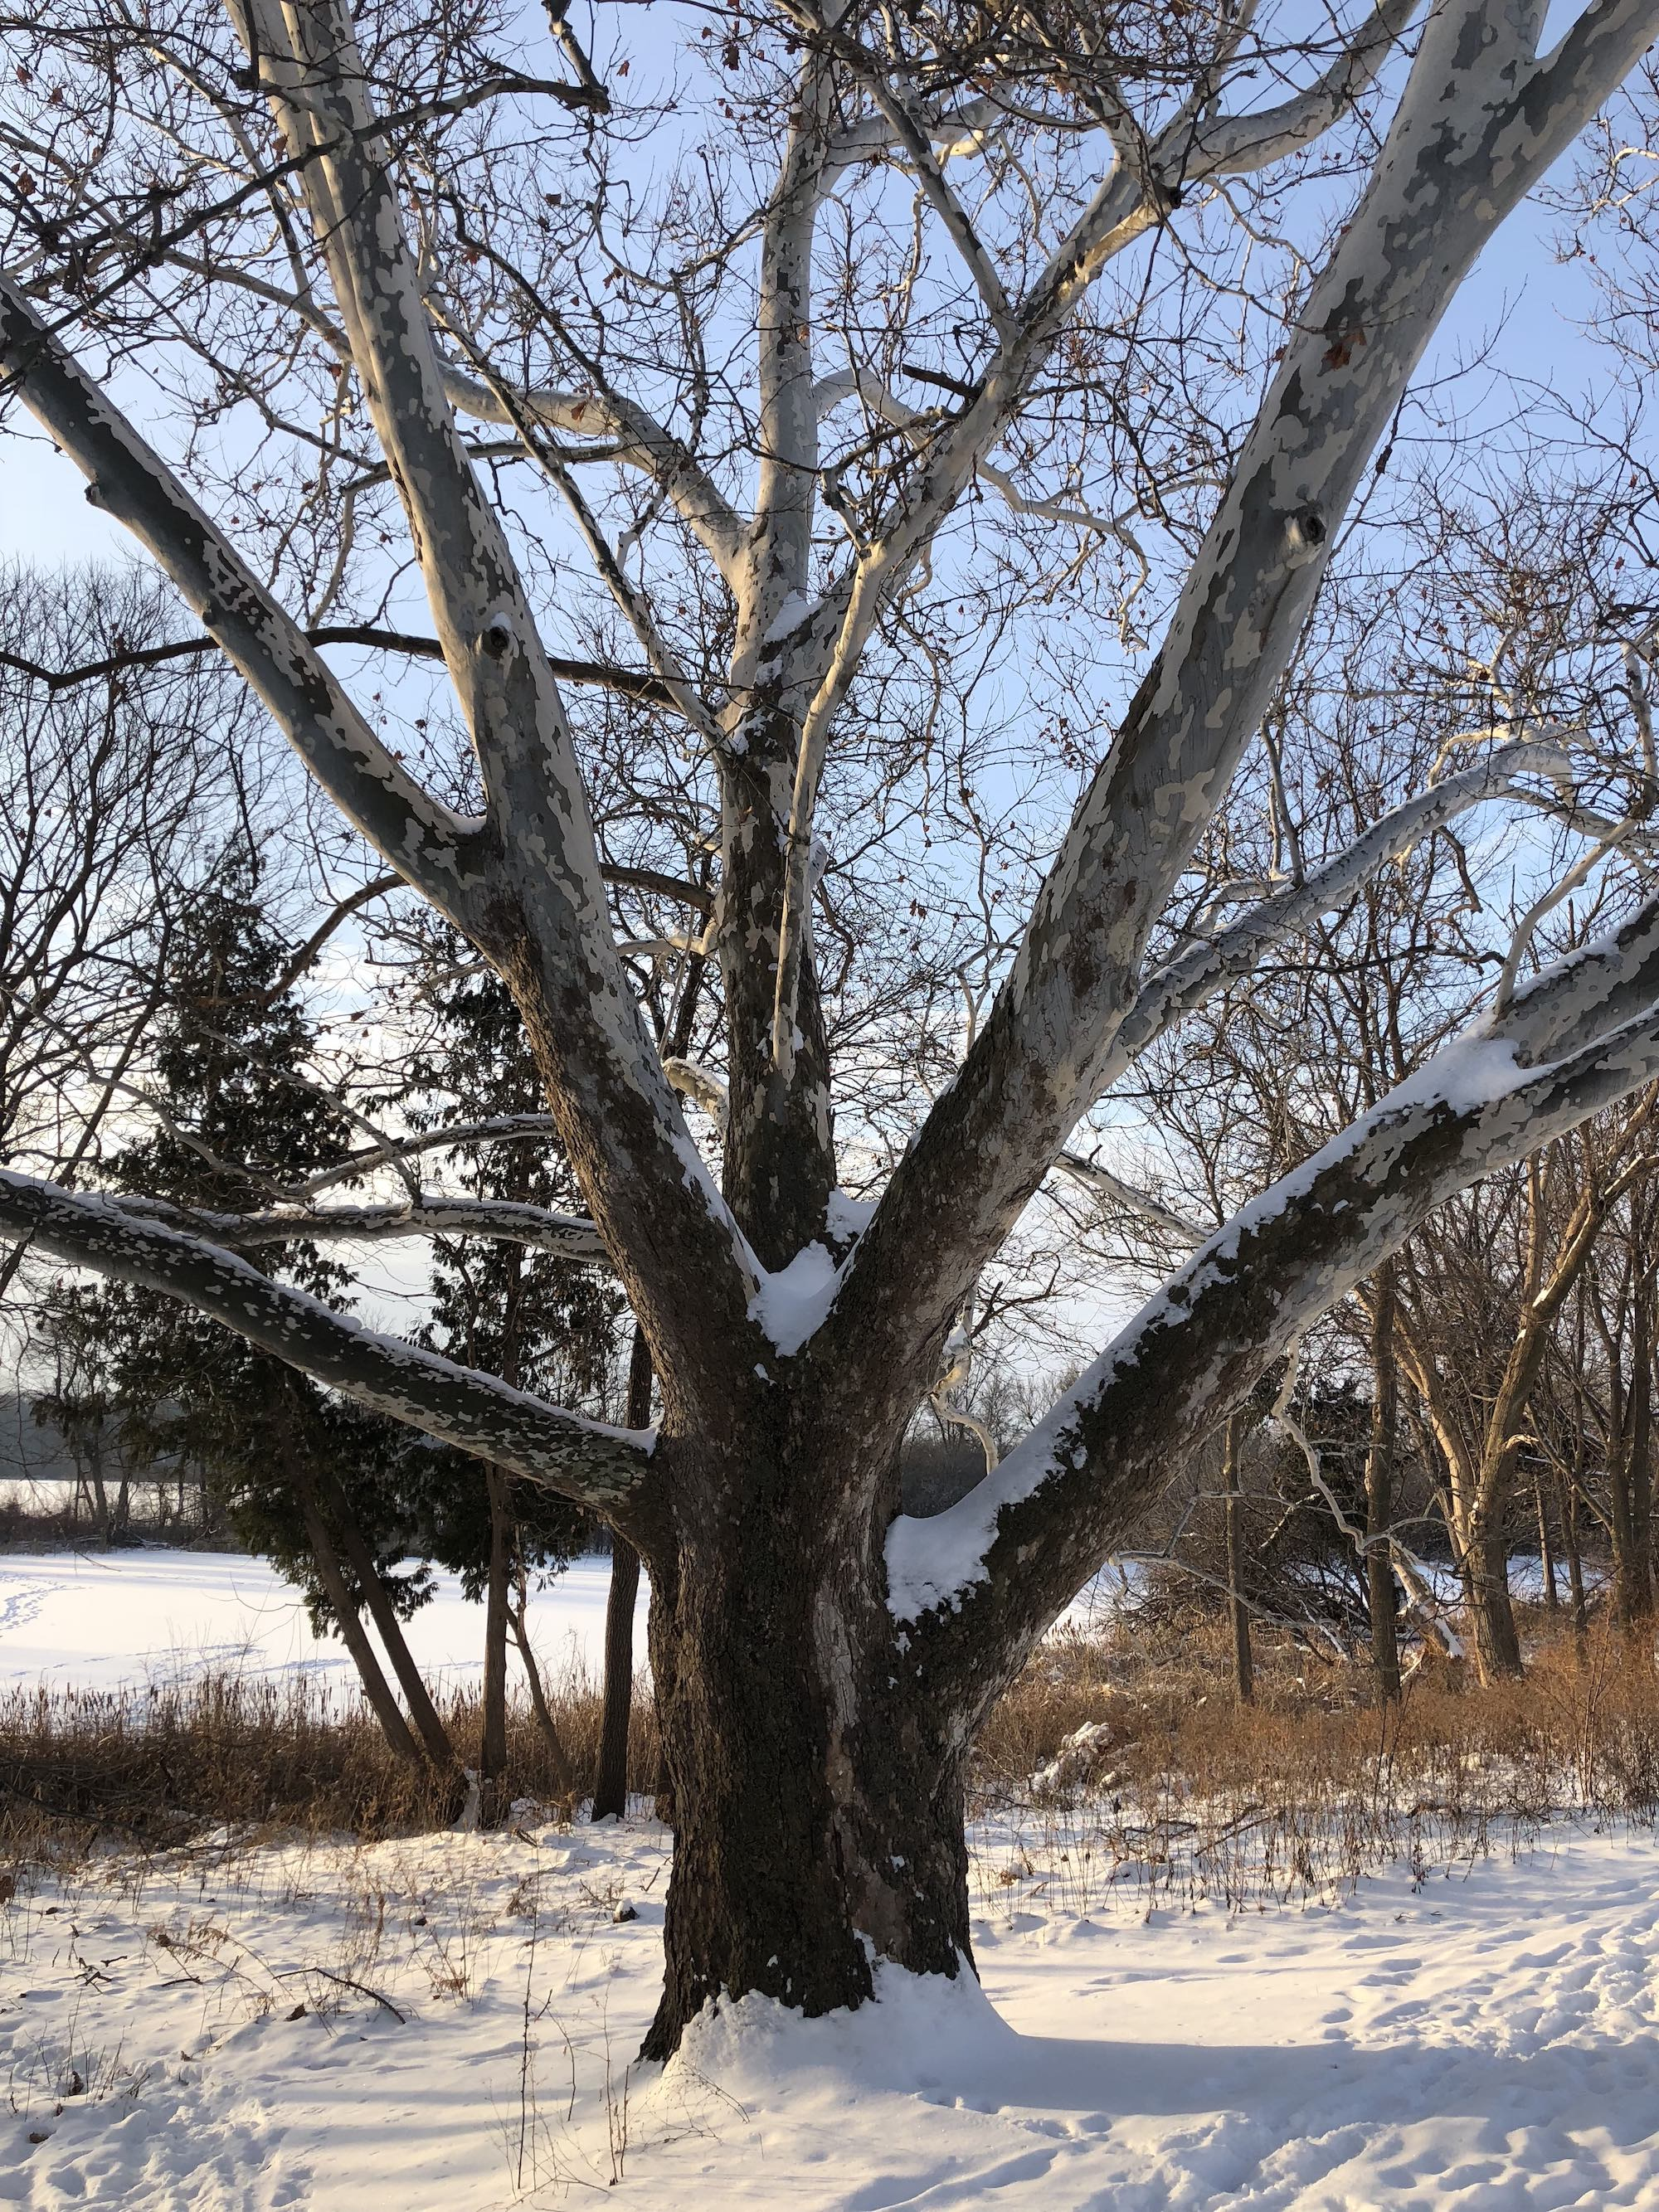 Sycamore tree between Ho-Nee-Um Pond and Arbor Drive on north shore of Lake Wingra on February 8, 2018.